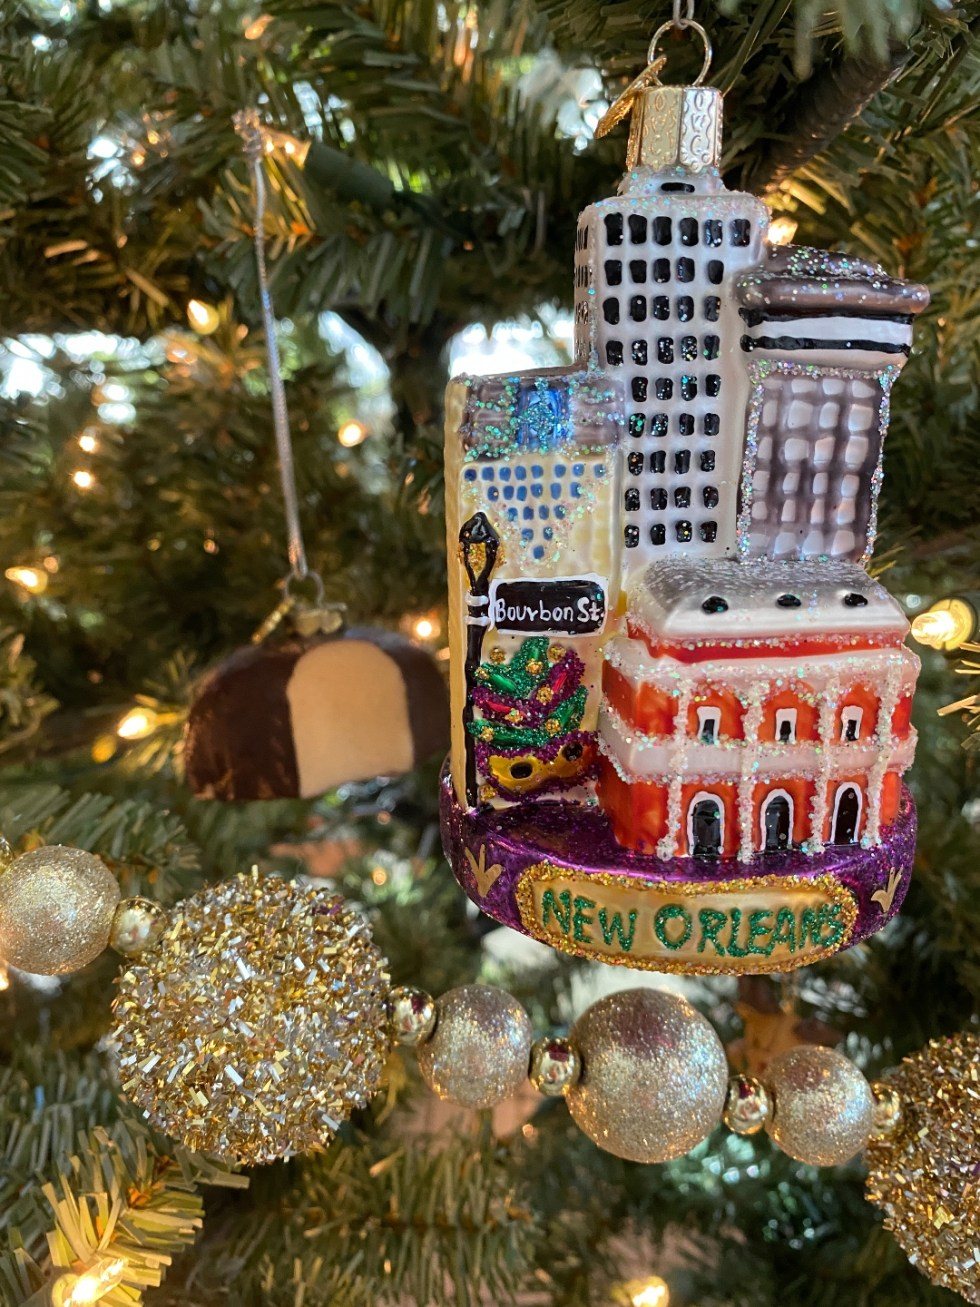 2020 Holidays: Unique Christmas Ornaments - I'm Fixin' To - @mbg0112 |Unique Christmas Ornaments by popular NC life and style blog, I'm Fixin' To: image of a New Orleans ornament.